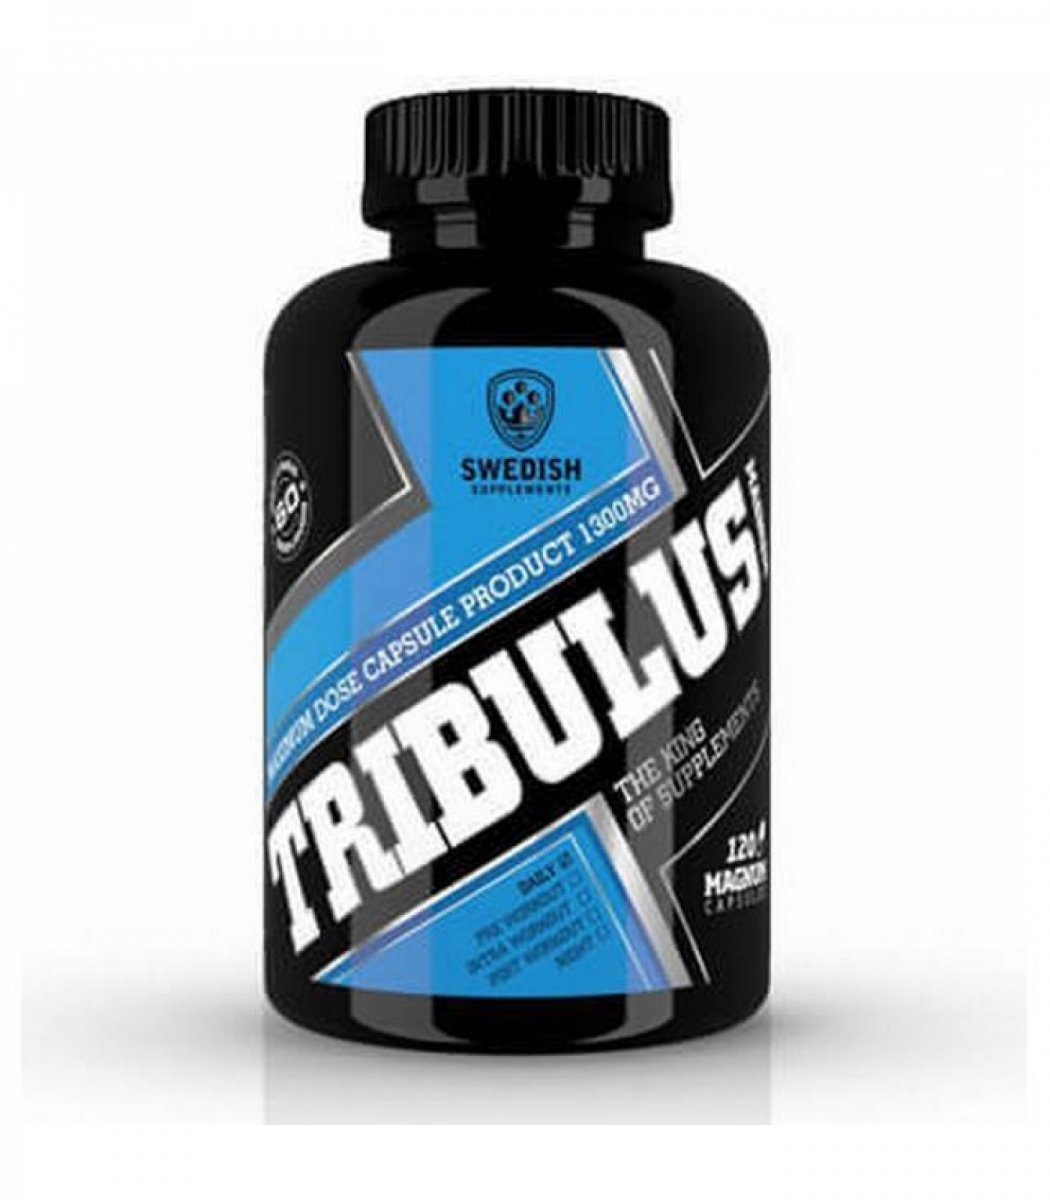 SWEDISH Supplements Tribulus Magnum 120caps